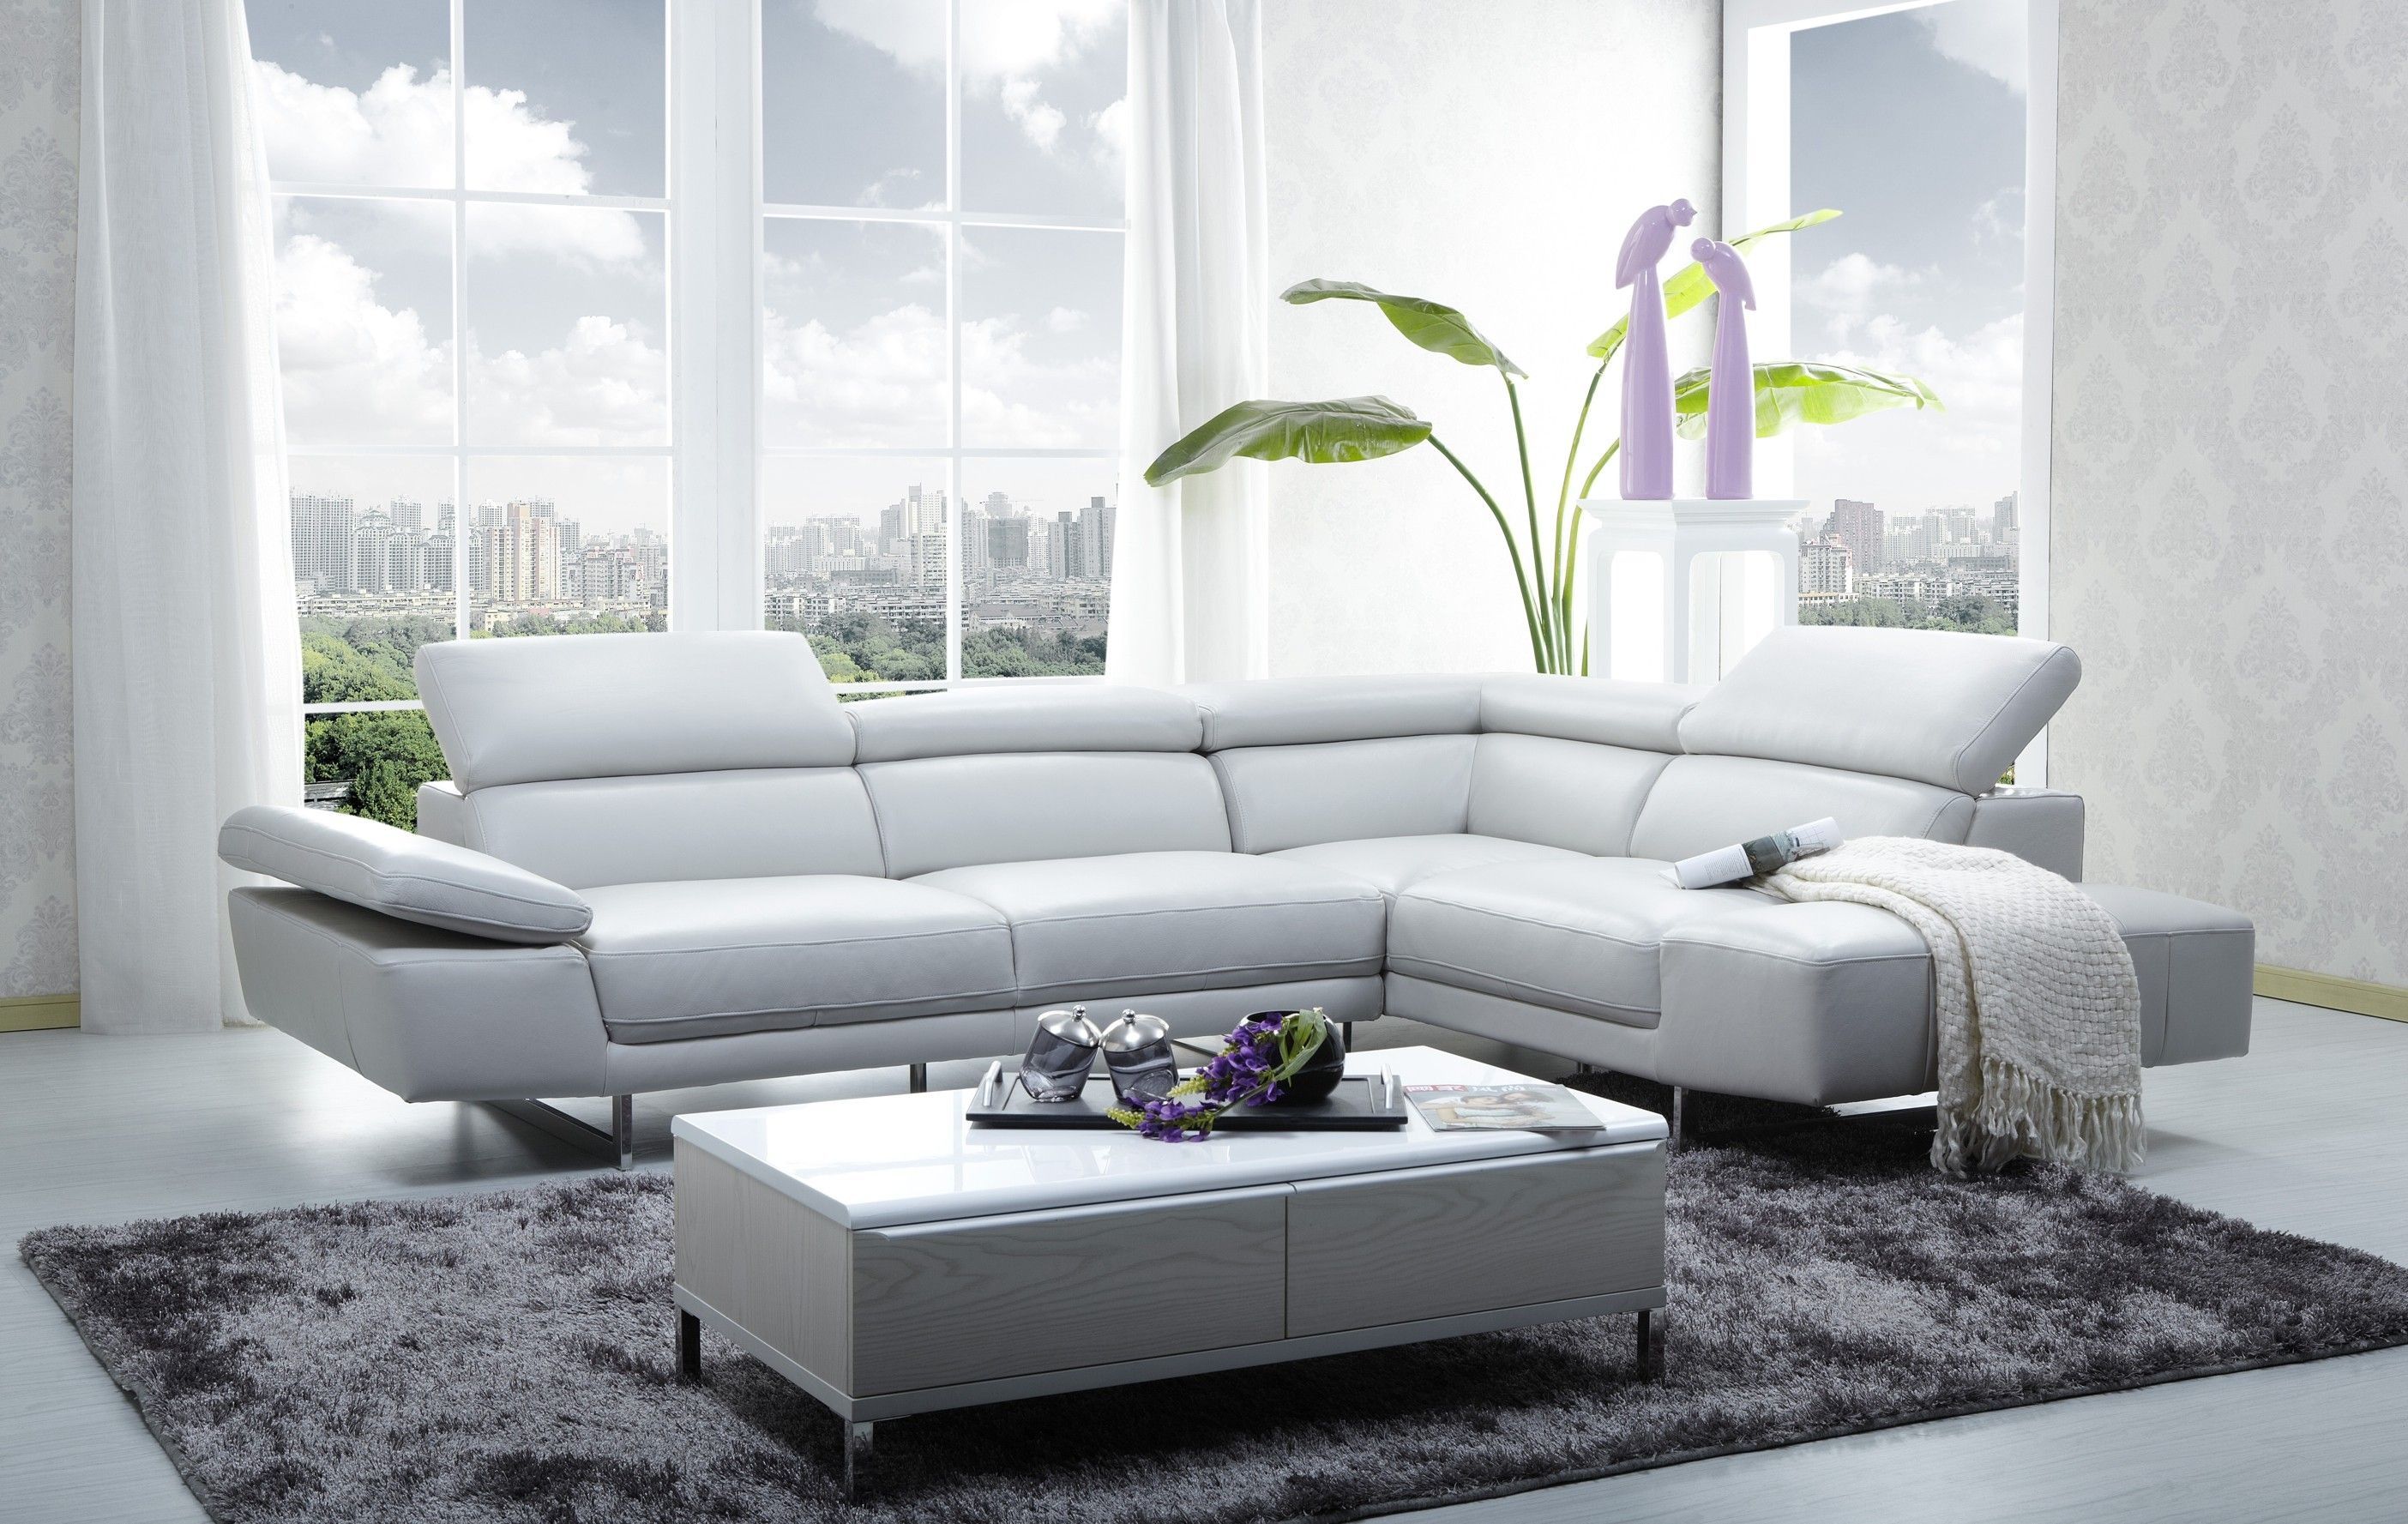 Modern Leather Couch Sofa Offers Great Comfort Darbylanefurniture Com In 2020 White Leather Sofas Modern Sofa Sectional Modern Leather Sectional